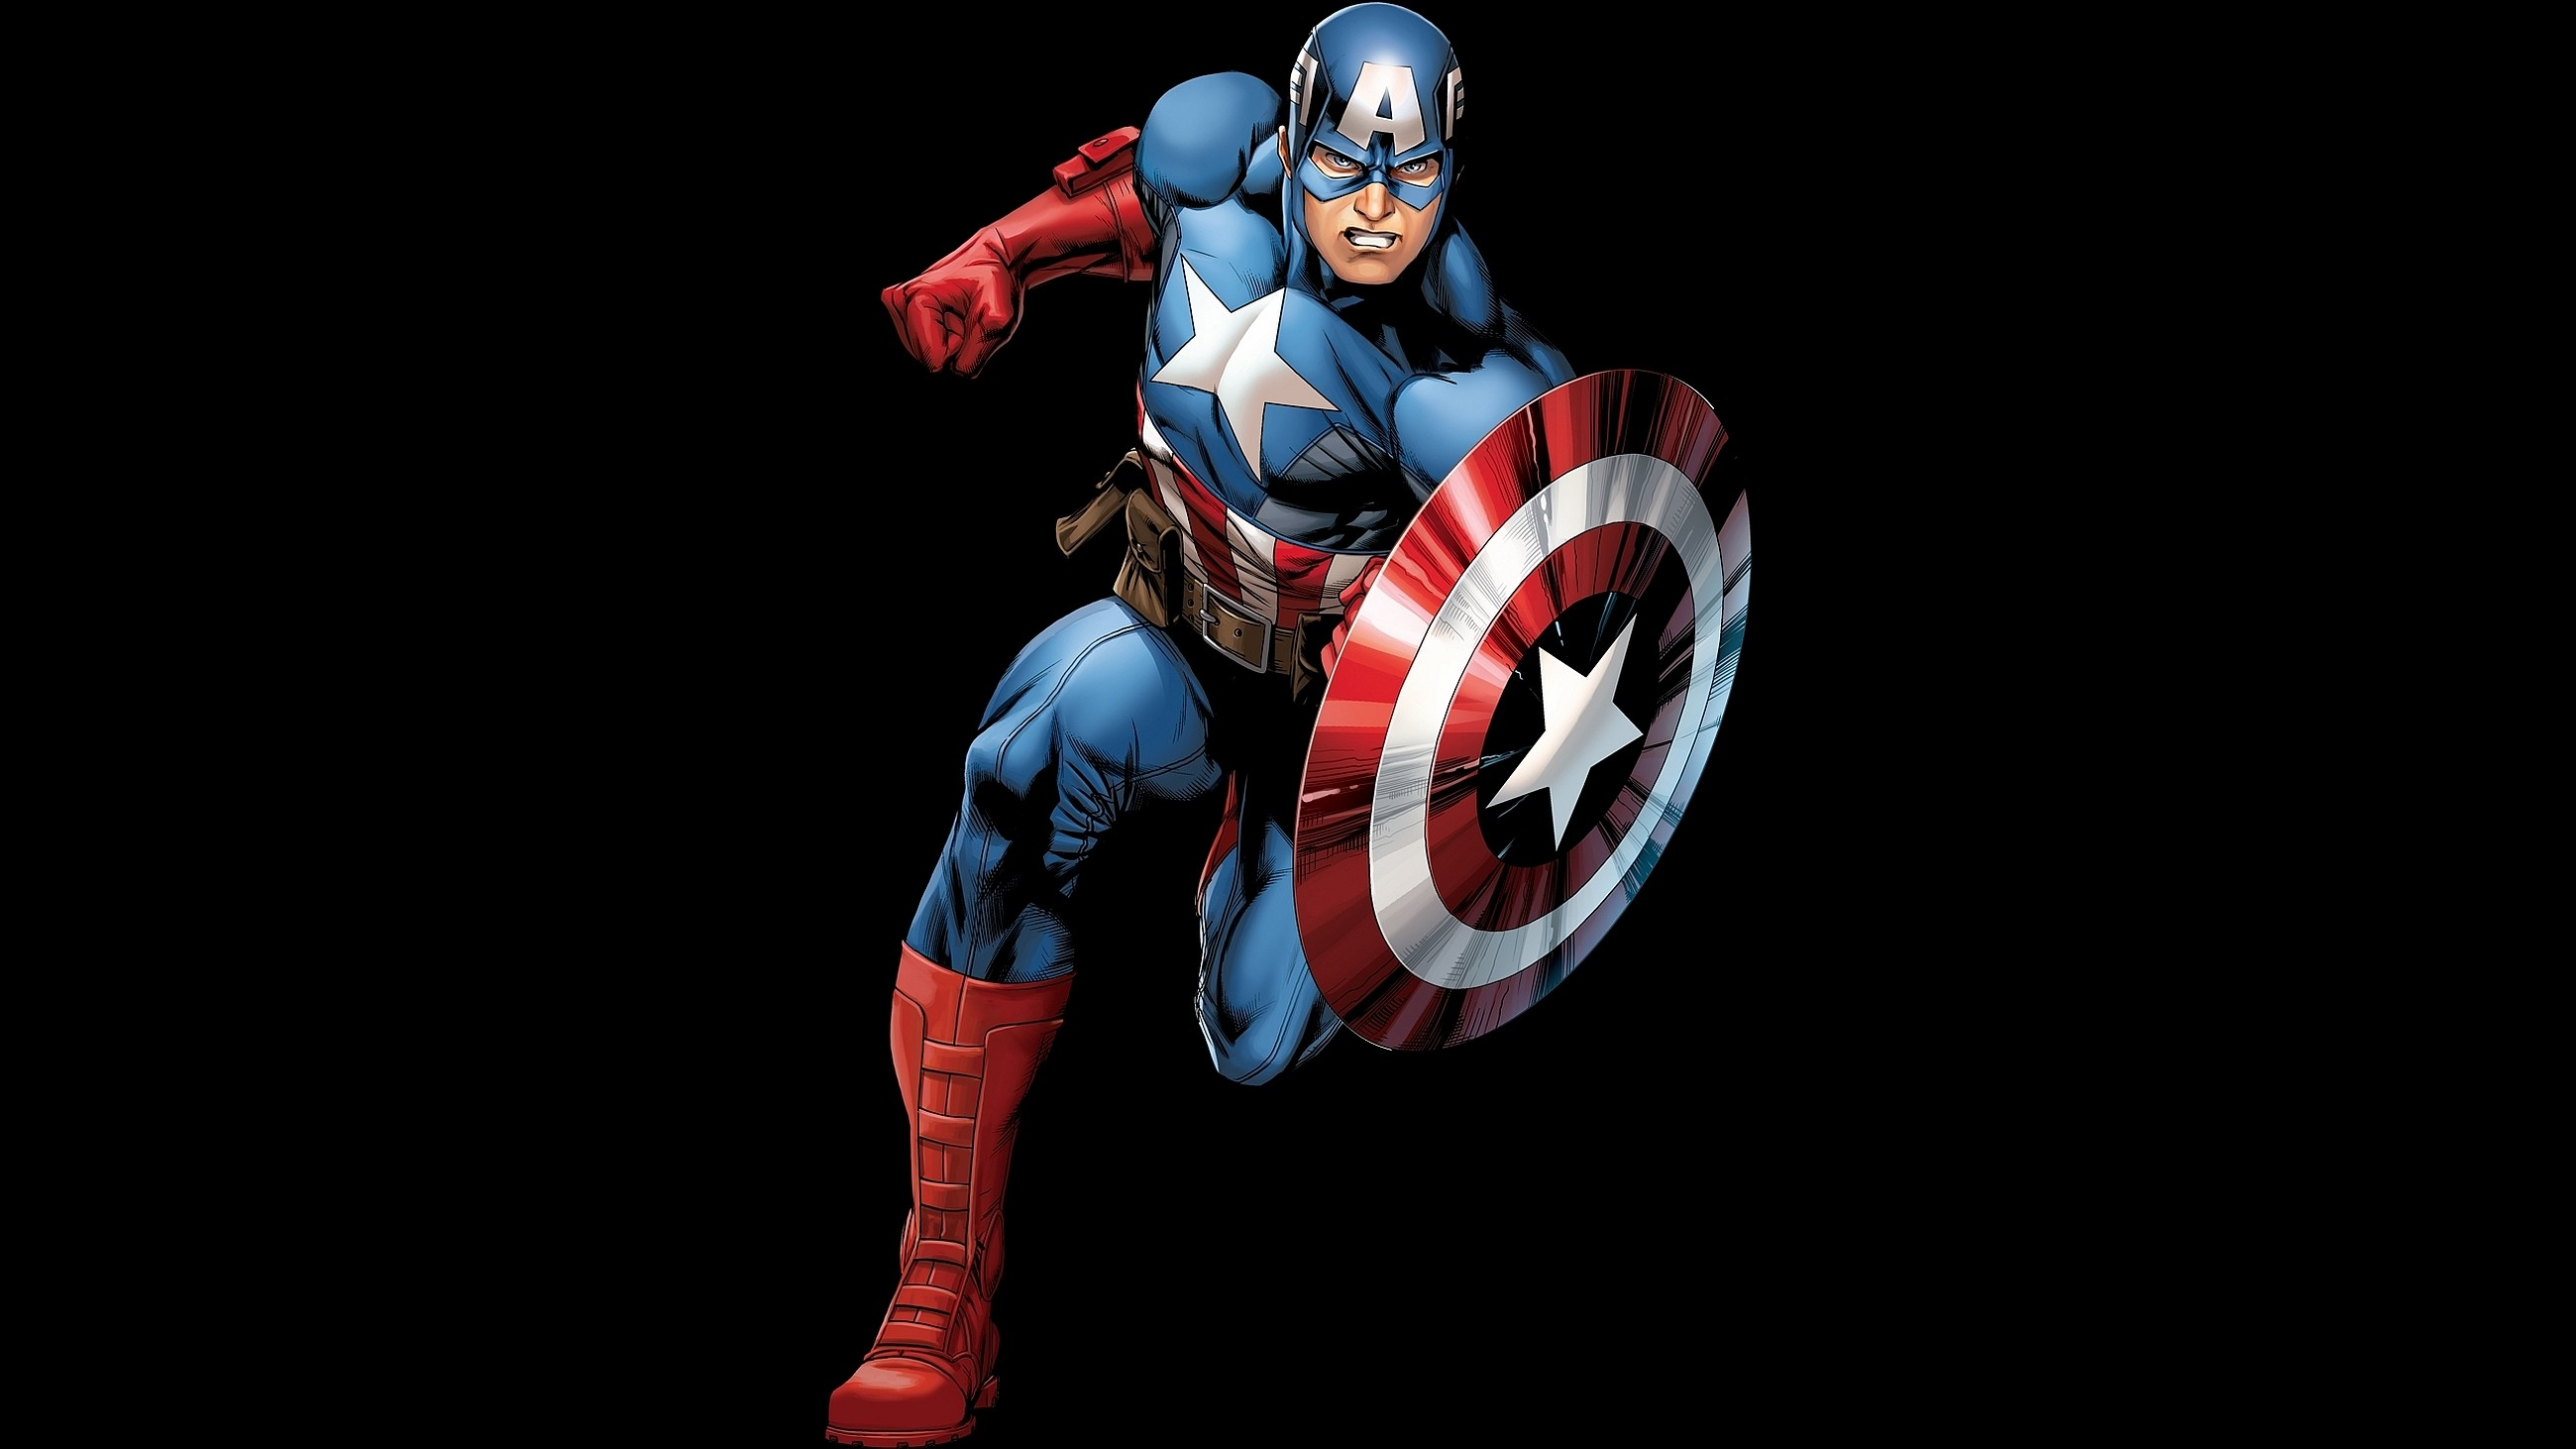 2600x1462 Captain America Shield Wallpaper Gallery 64 Images